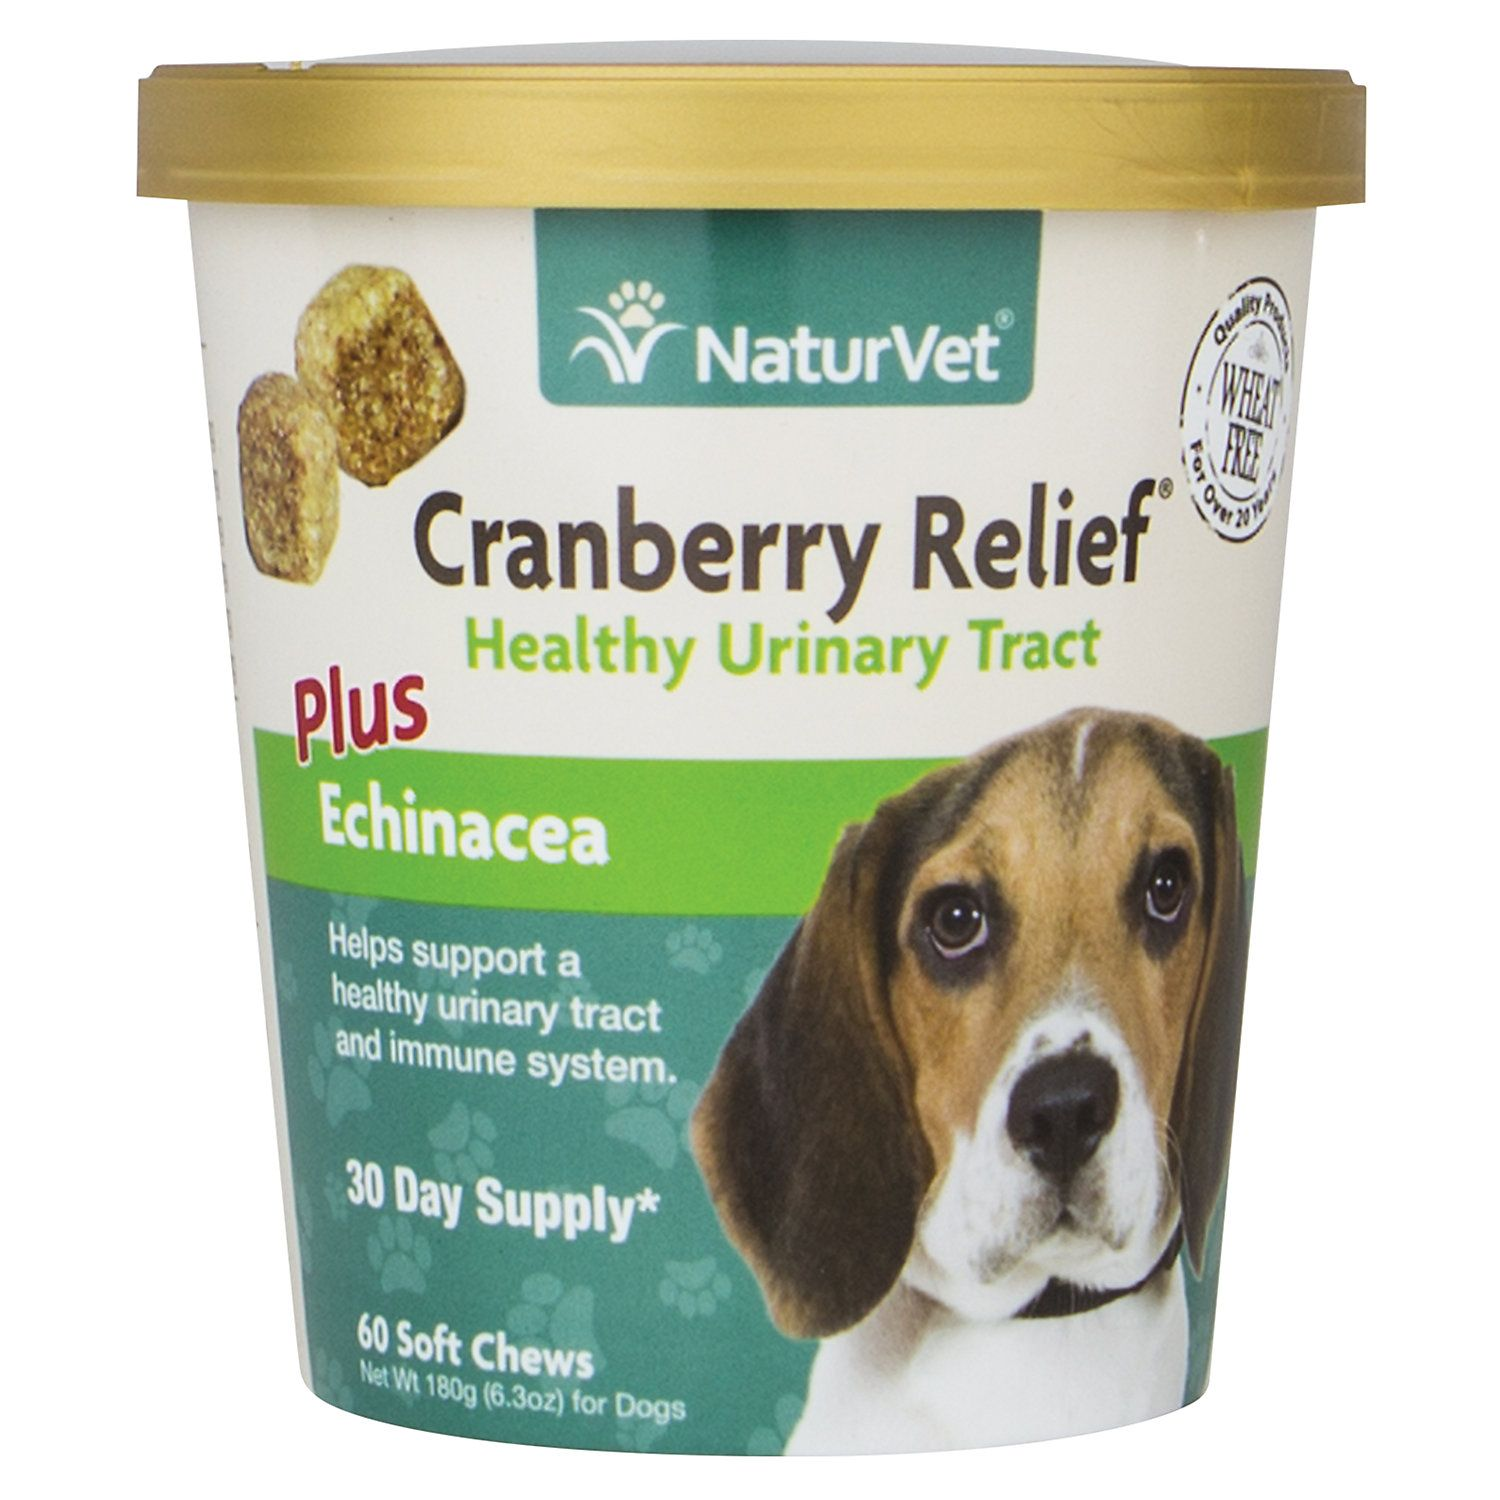 Naturvet Cranberry Relief Healthy Urinary Tract Dog Soft Chews Pack Of 60 Chews In 2020 Cranberry Dog Uti Pet Supplements